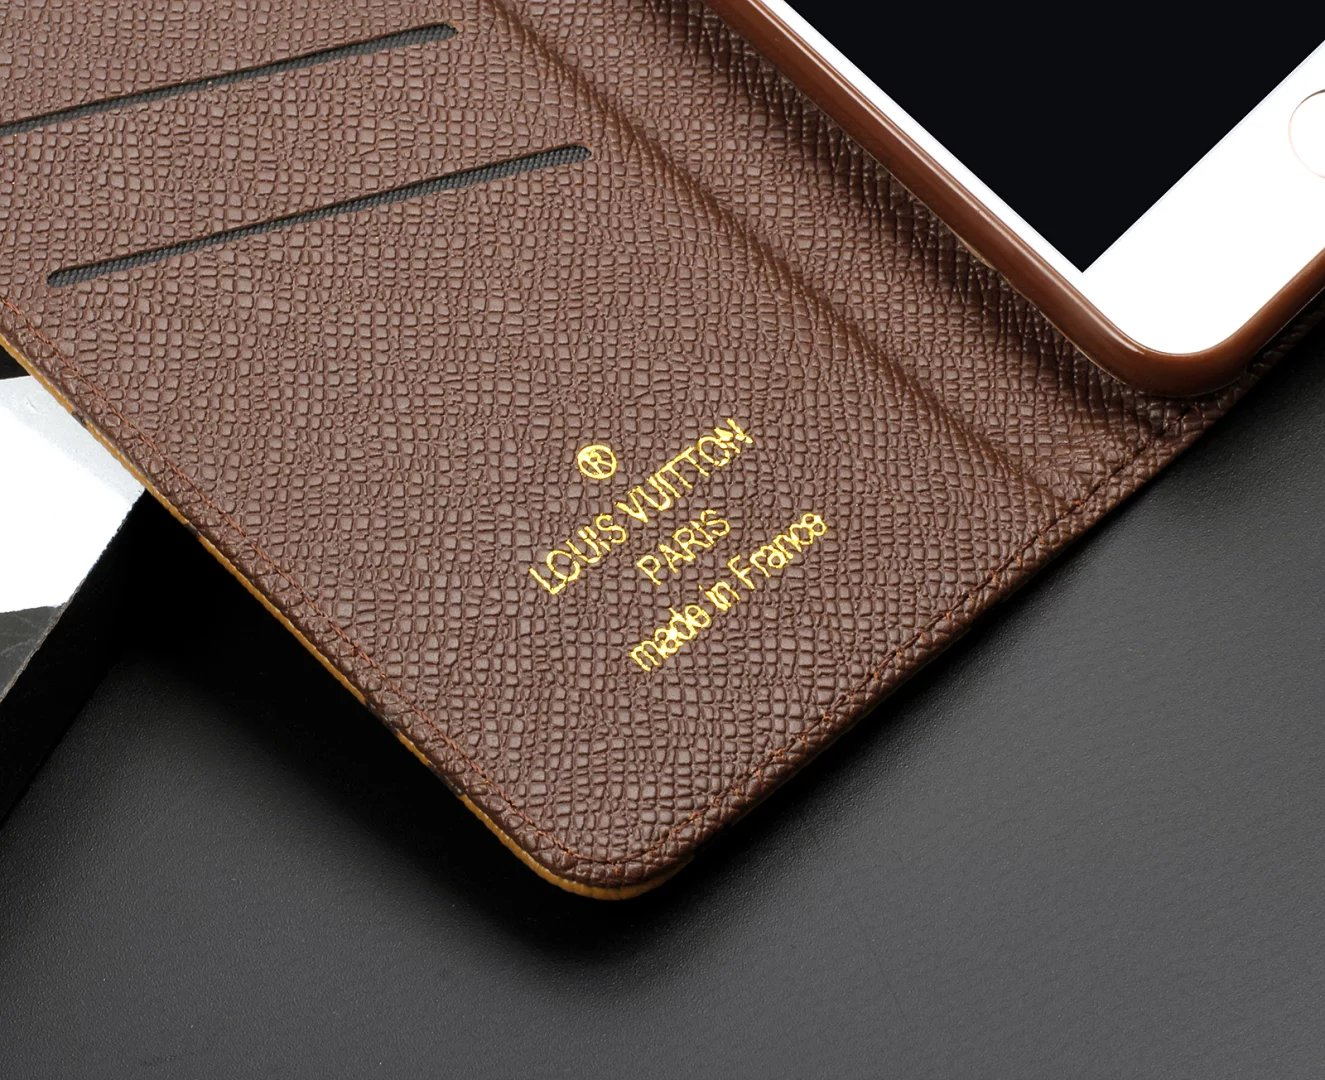 best iphone cases 8 in case iphone 8 Louis Vuitton iphone 8 case in case phone cases iphone 8 cases women apple i phone covers top rated iphone 8 case mophie 8 case iphone cell phone covers